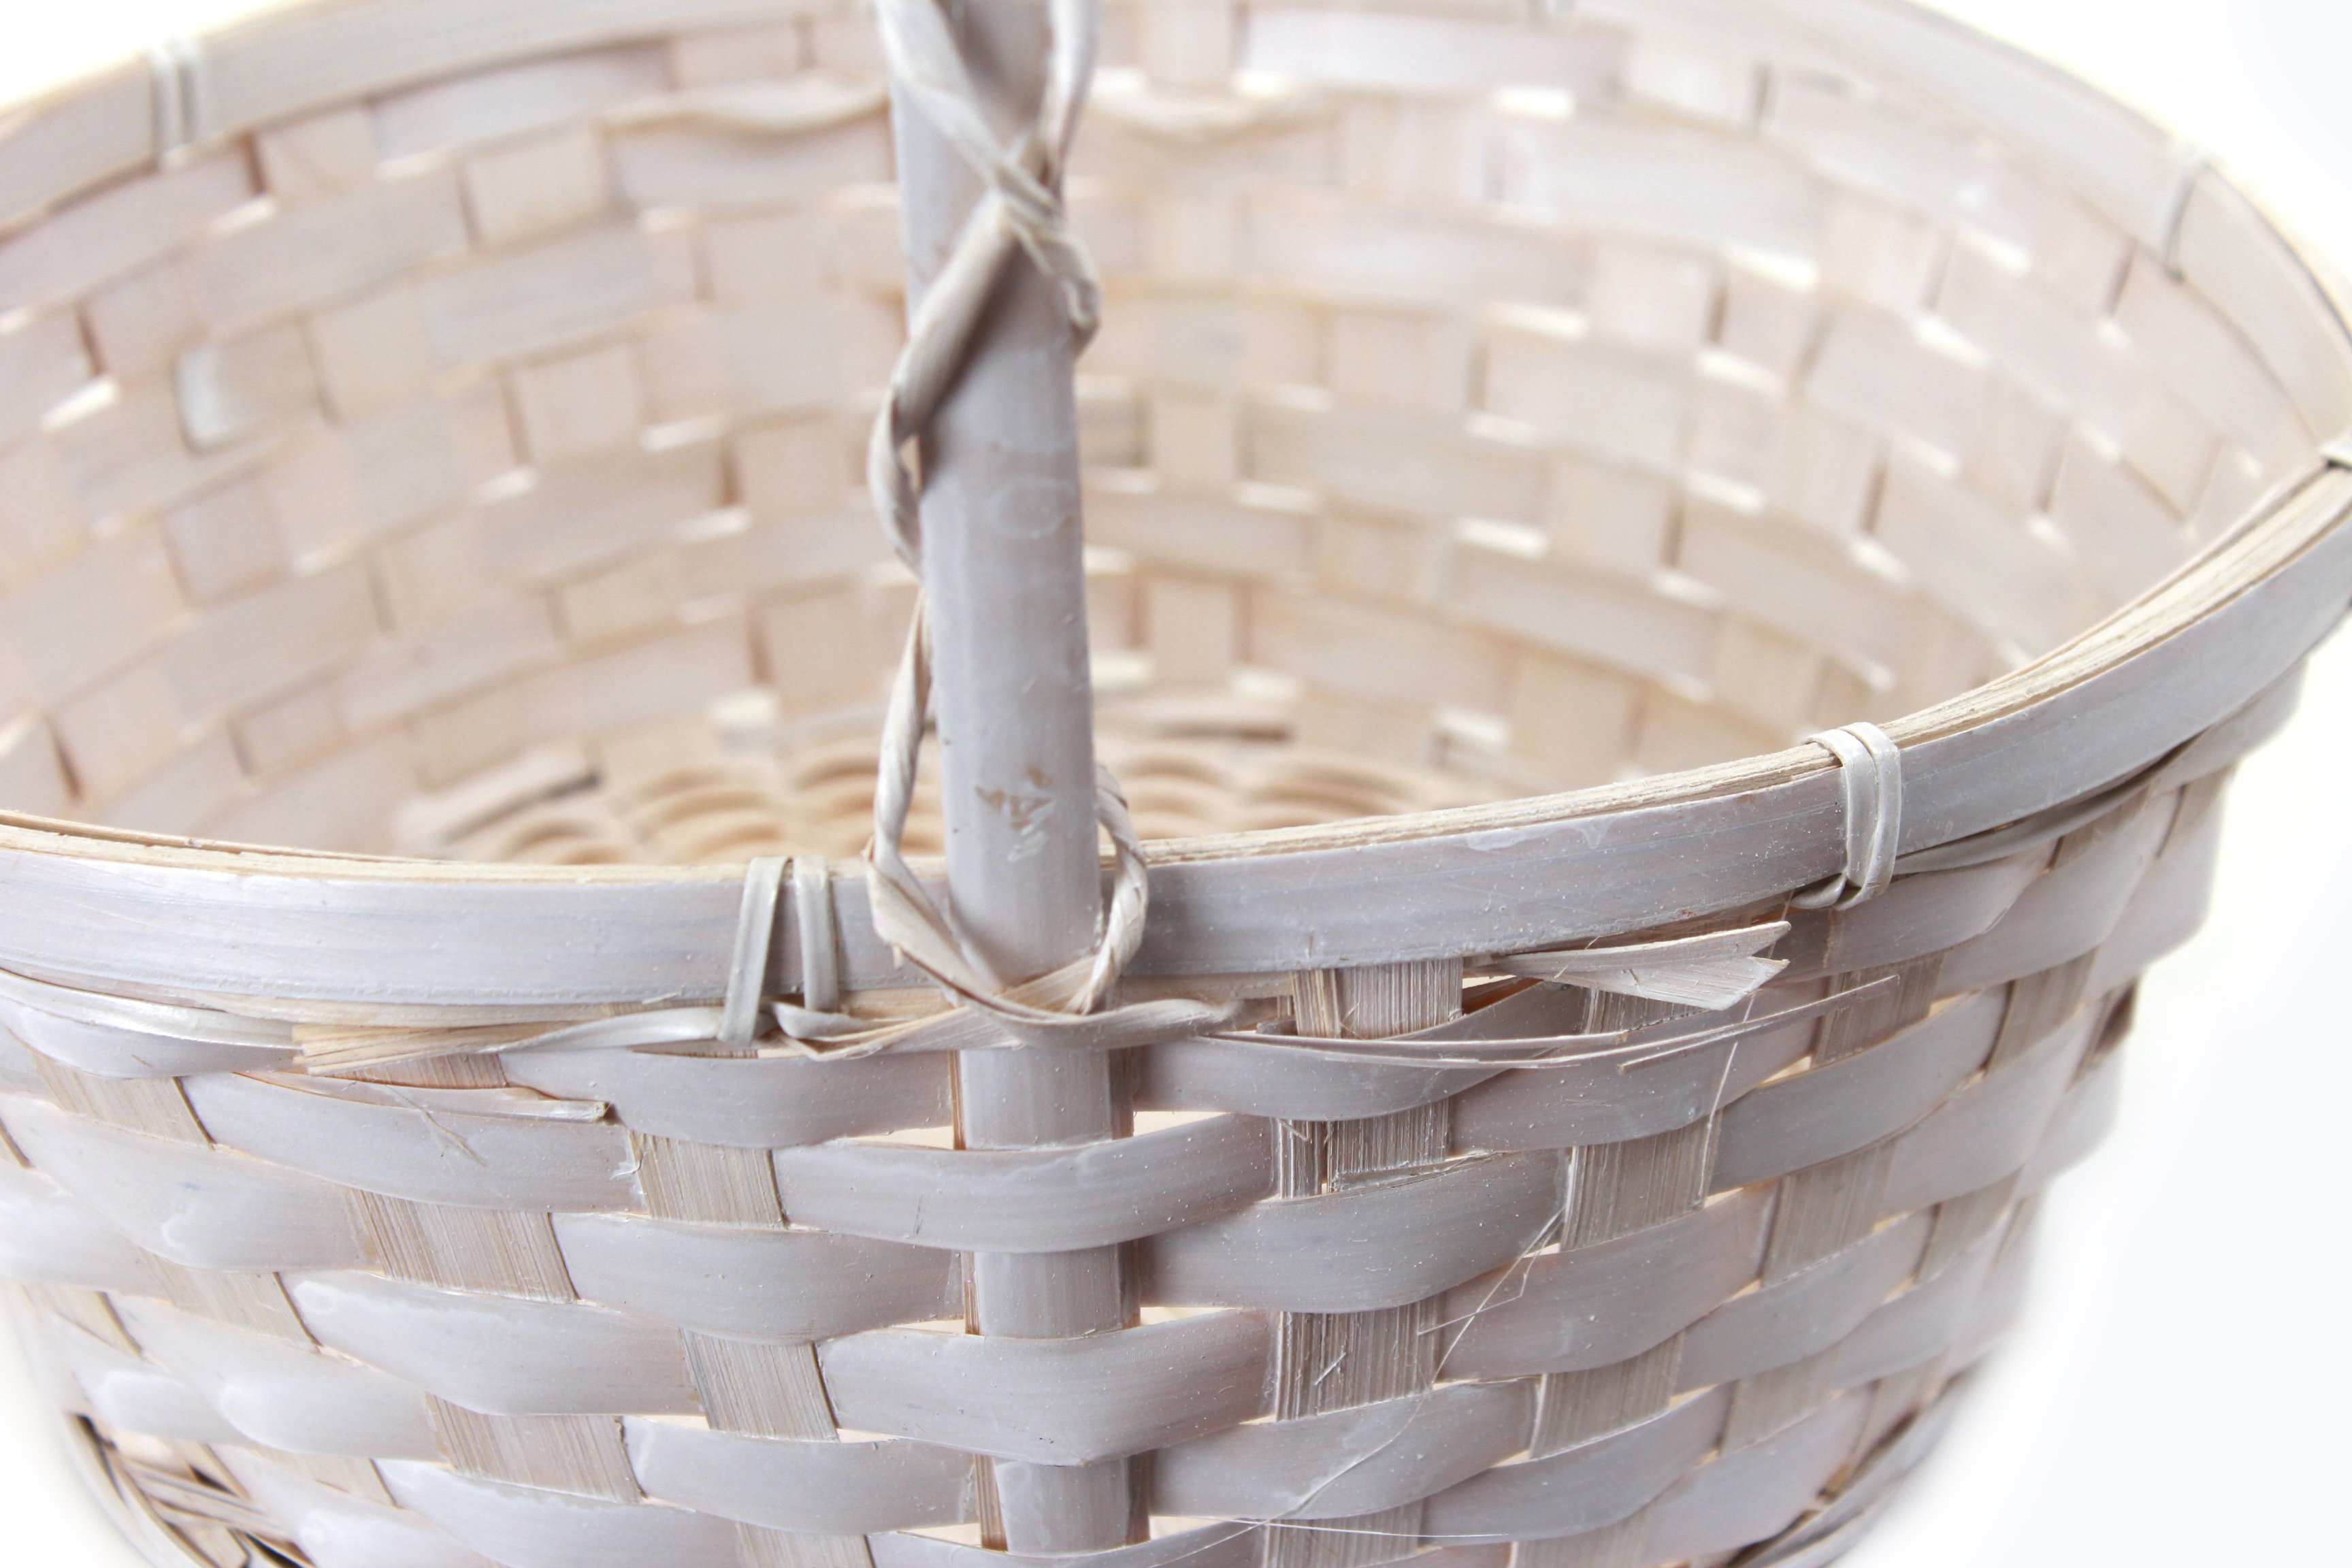 Antique White Round Baskets with Handle close